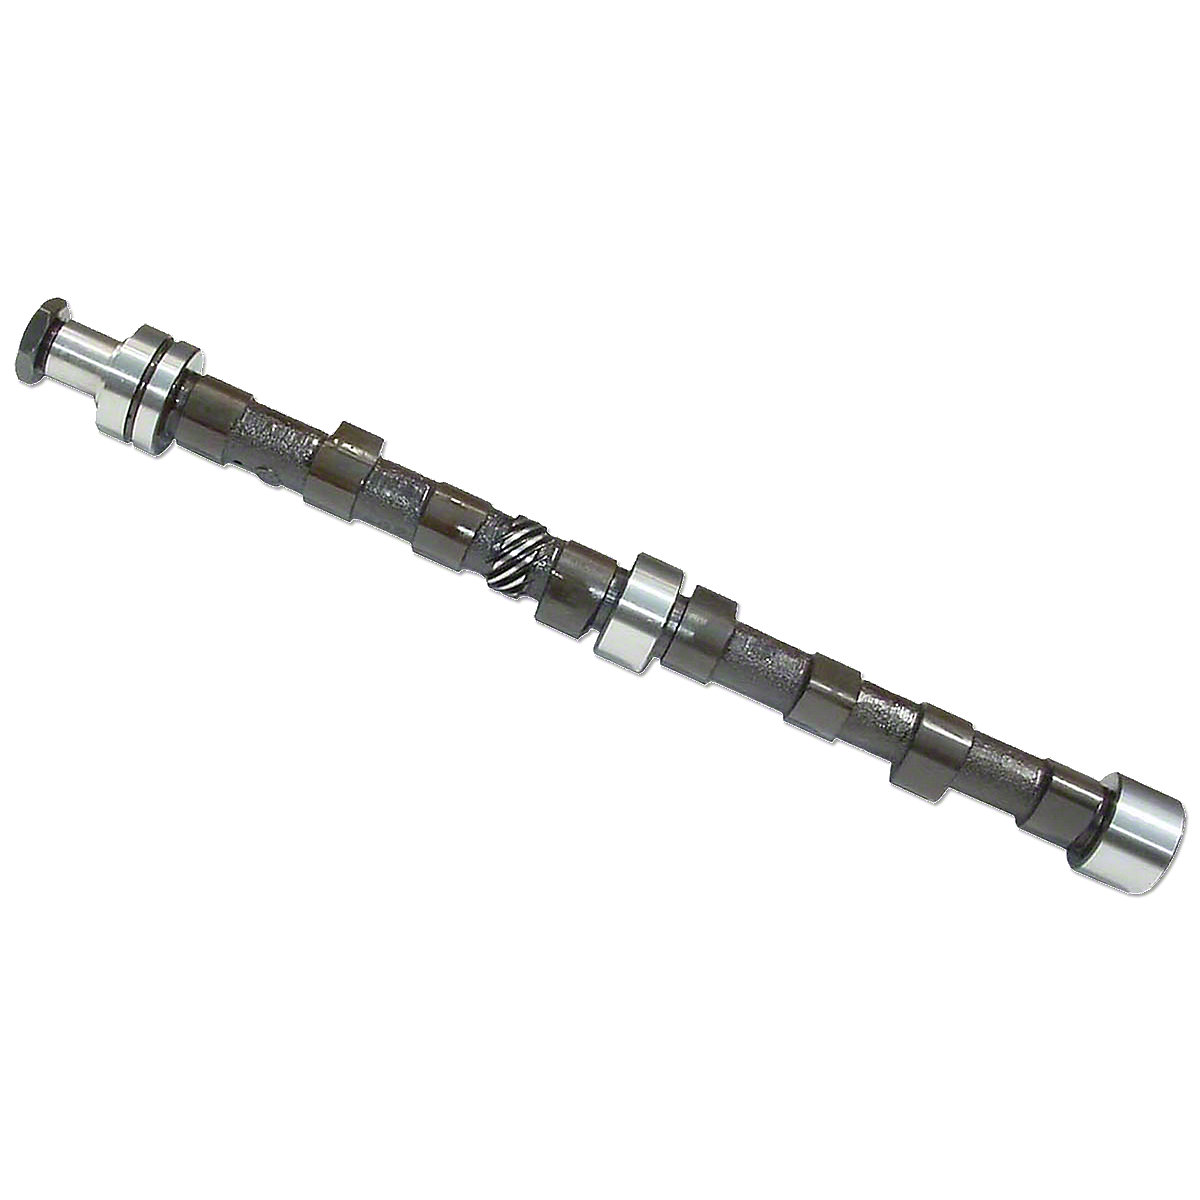 Camshaft With Nut For Massey Ferguson: 135, 150, 230, 235, 245, 2135, 6500, 20C, 2500, 30B, 4500.